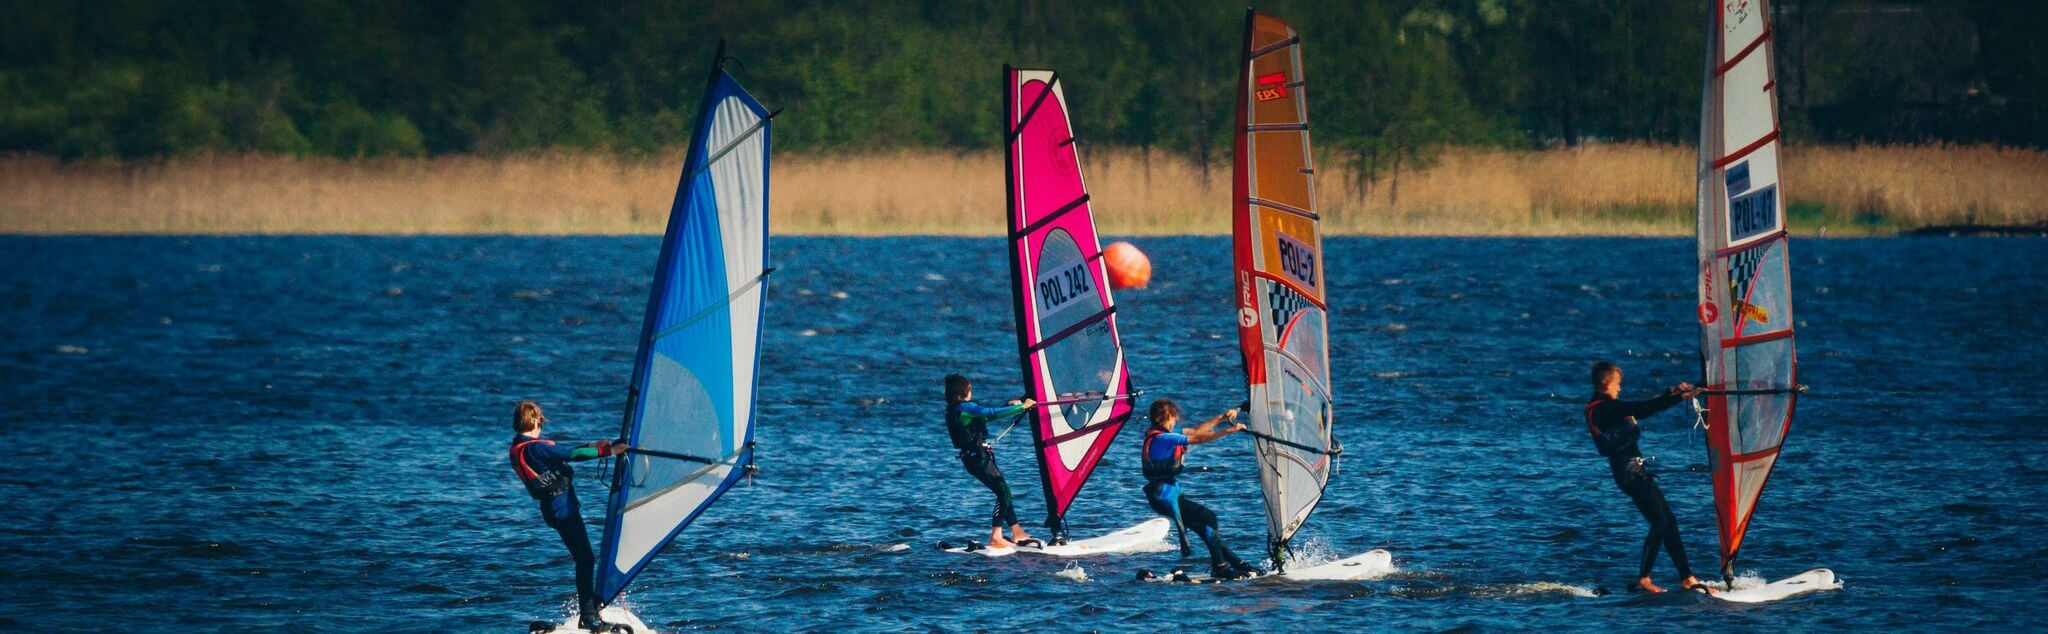 Windsurfing in Berkshire